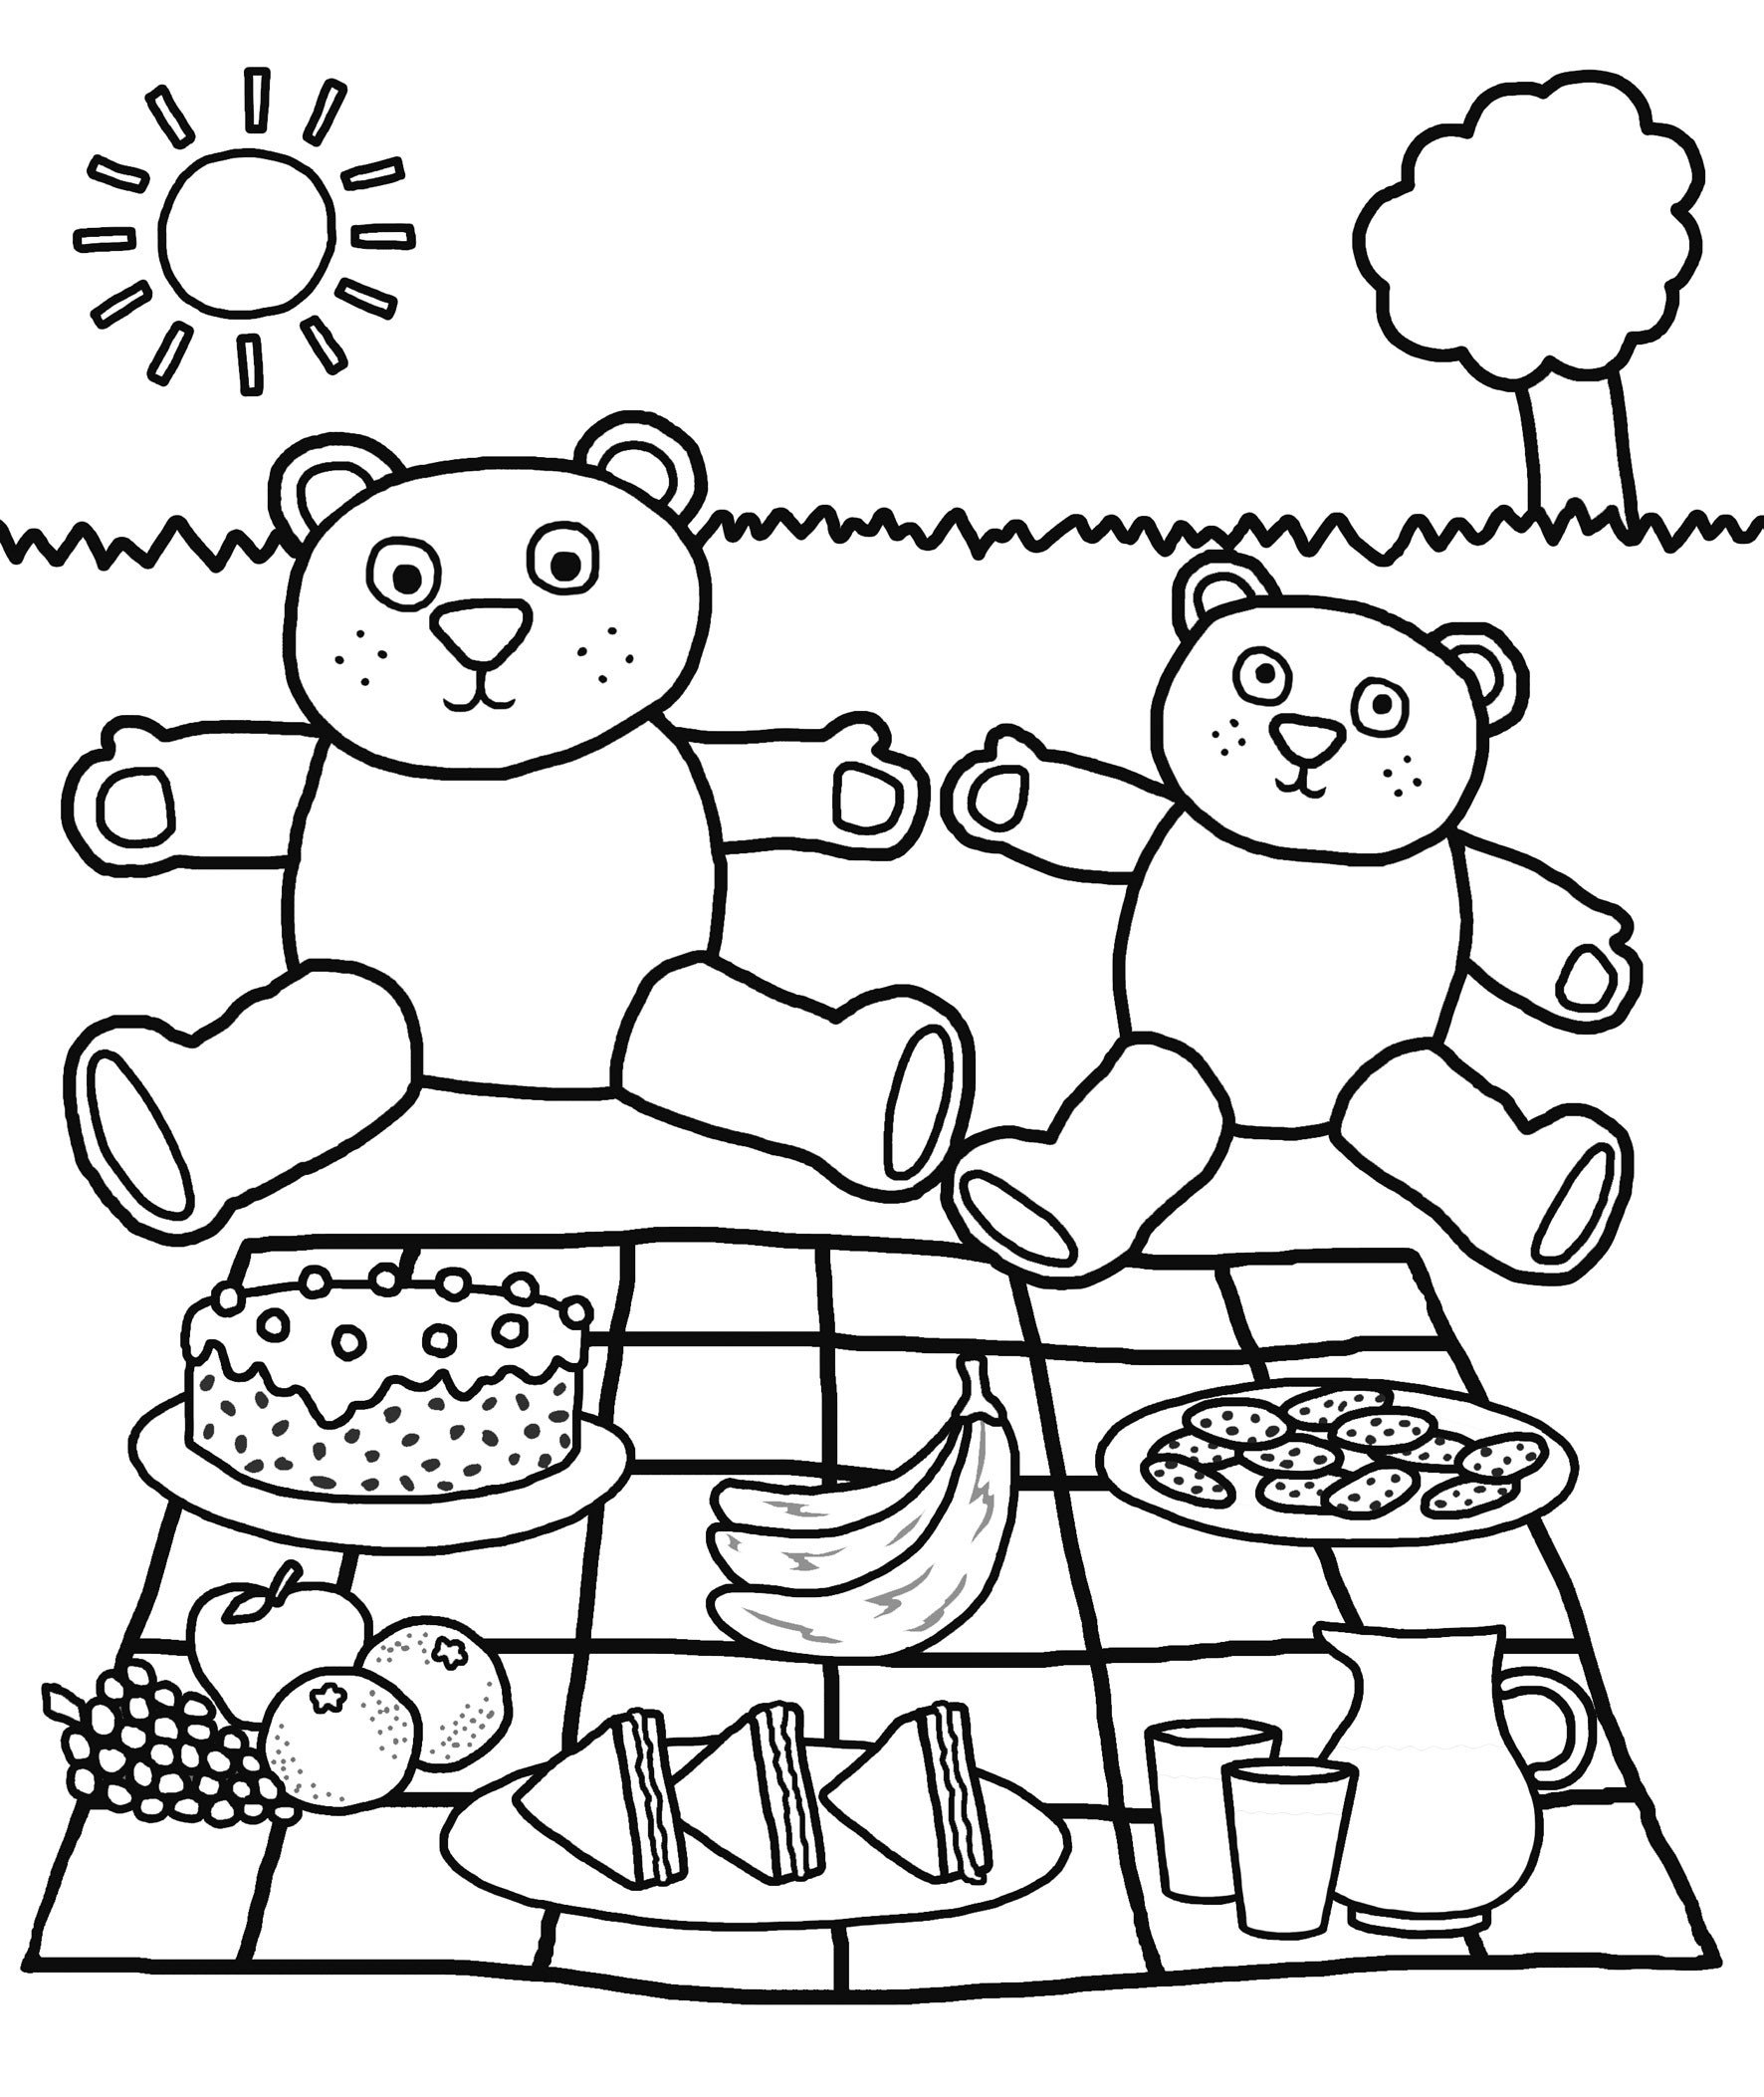 free printabledergarten coloring pages for kids book field day